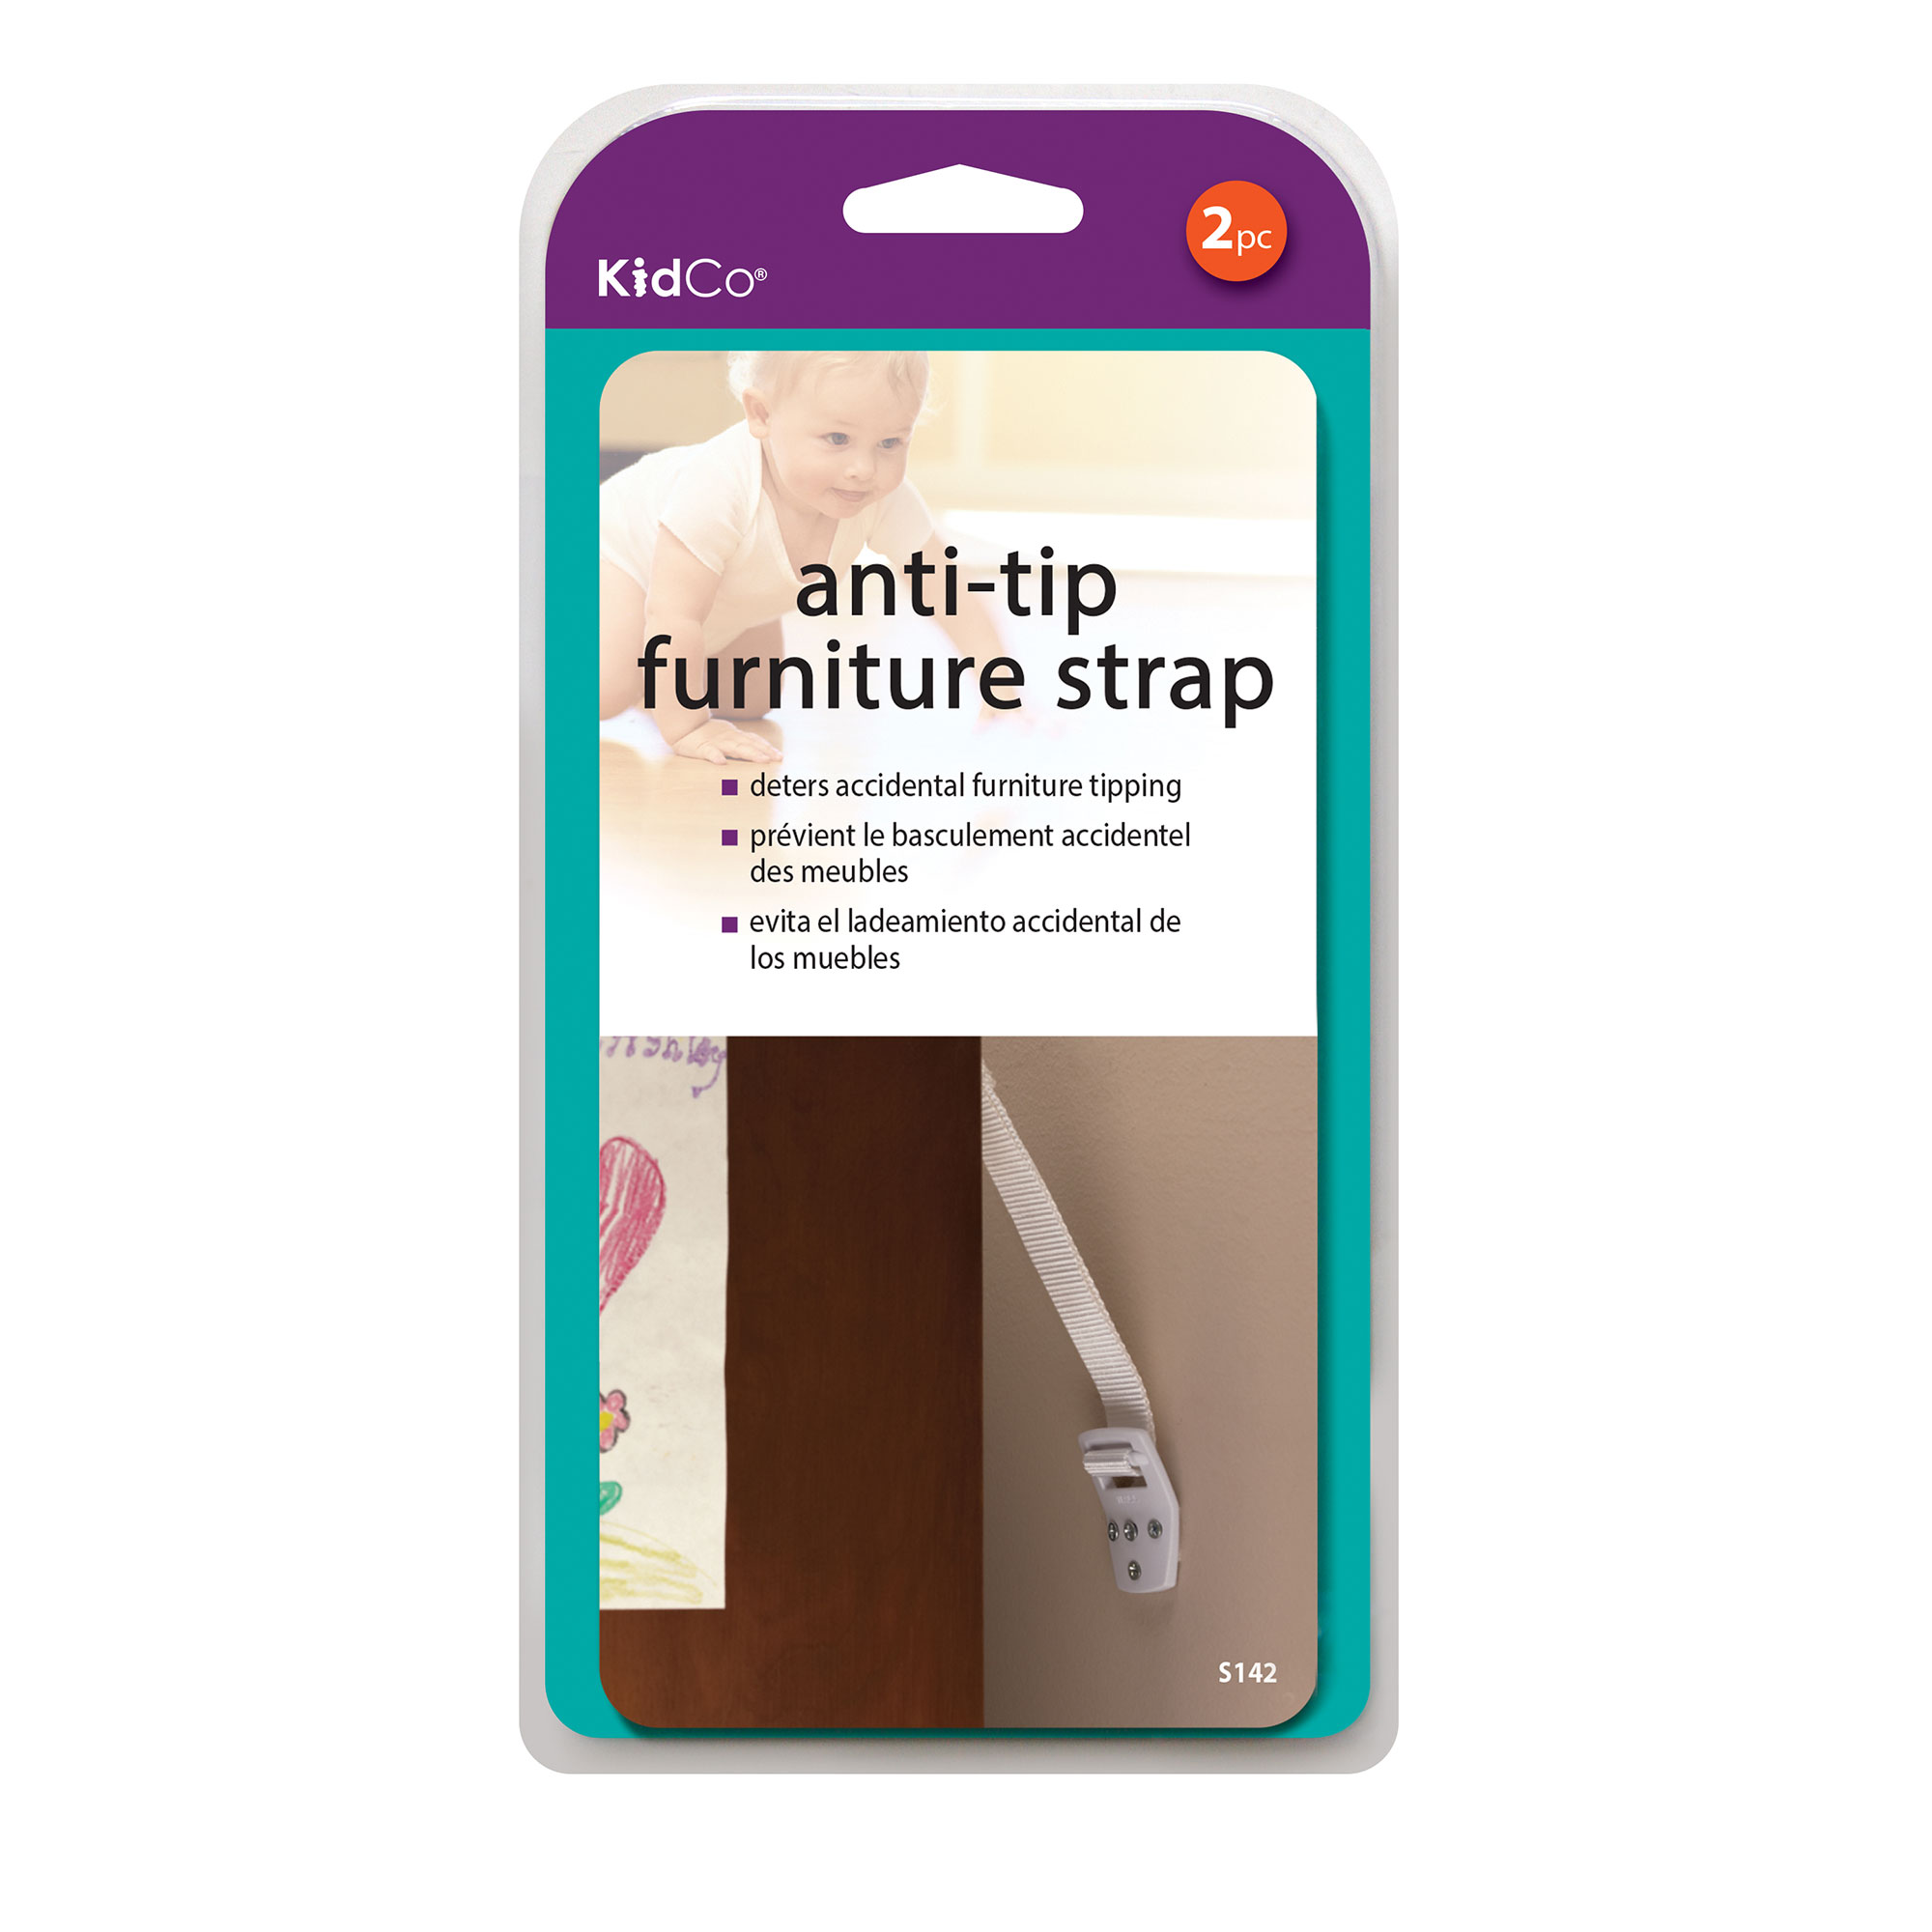 NEW White 2 Count KidCo Anti-tip furniture Strap - FREE SHIPPING